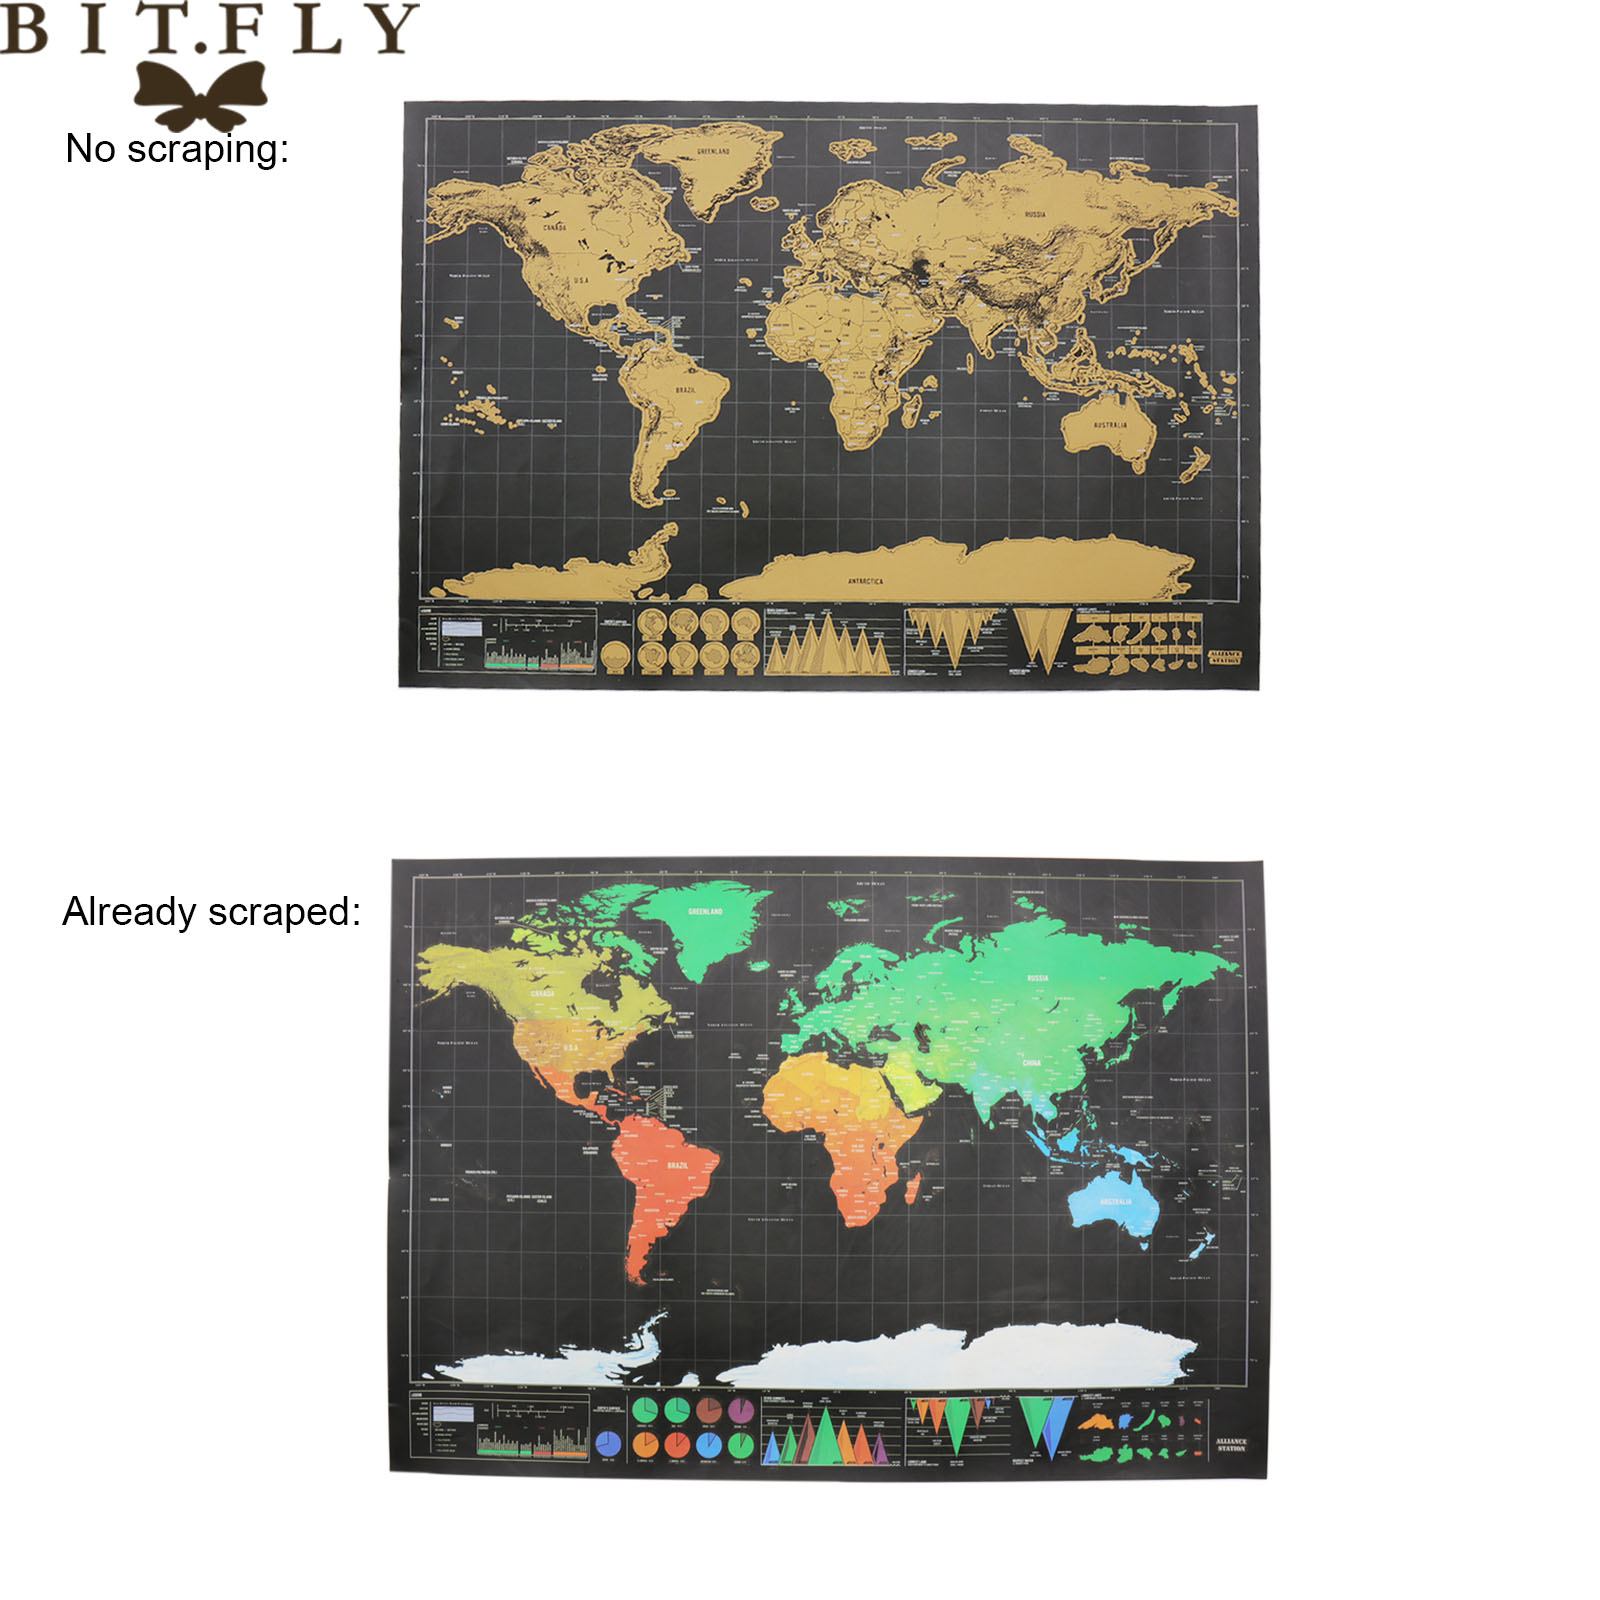 BITFLY 1 PCS Scratch Map New Design Black Deluxe Maps Travelwr Scratch Off World Best Gift for Education School Office Supplies image